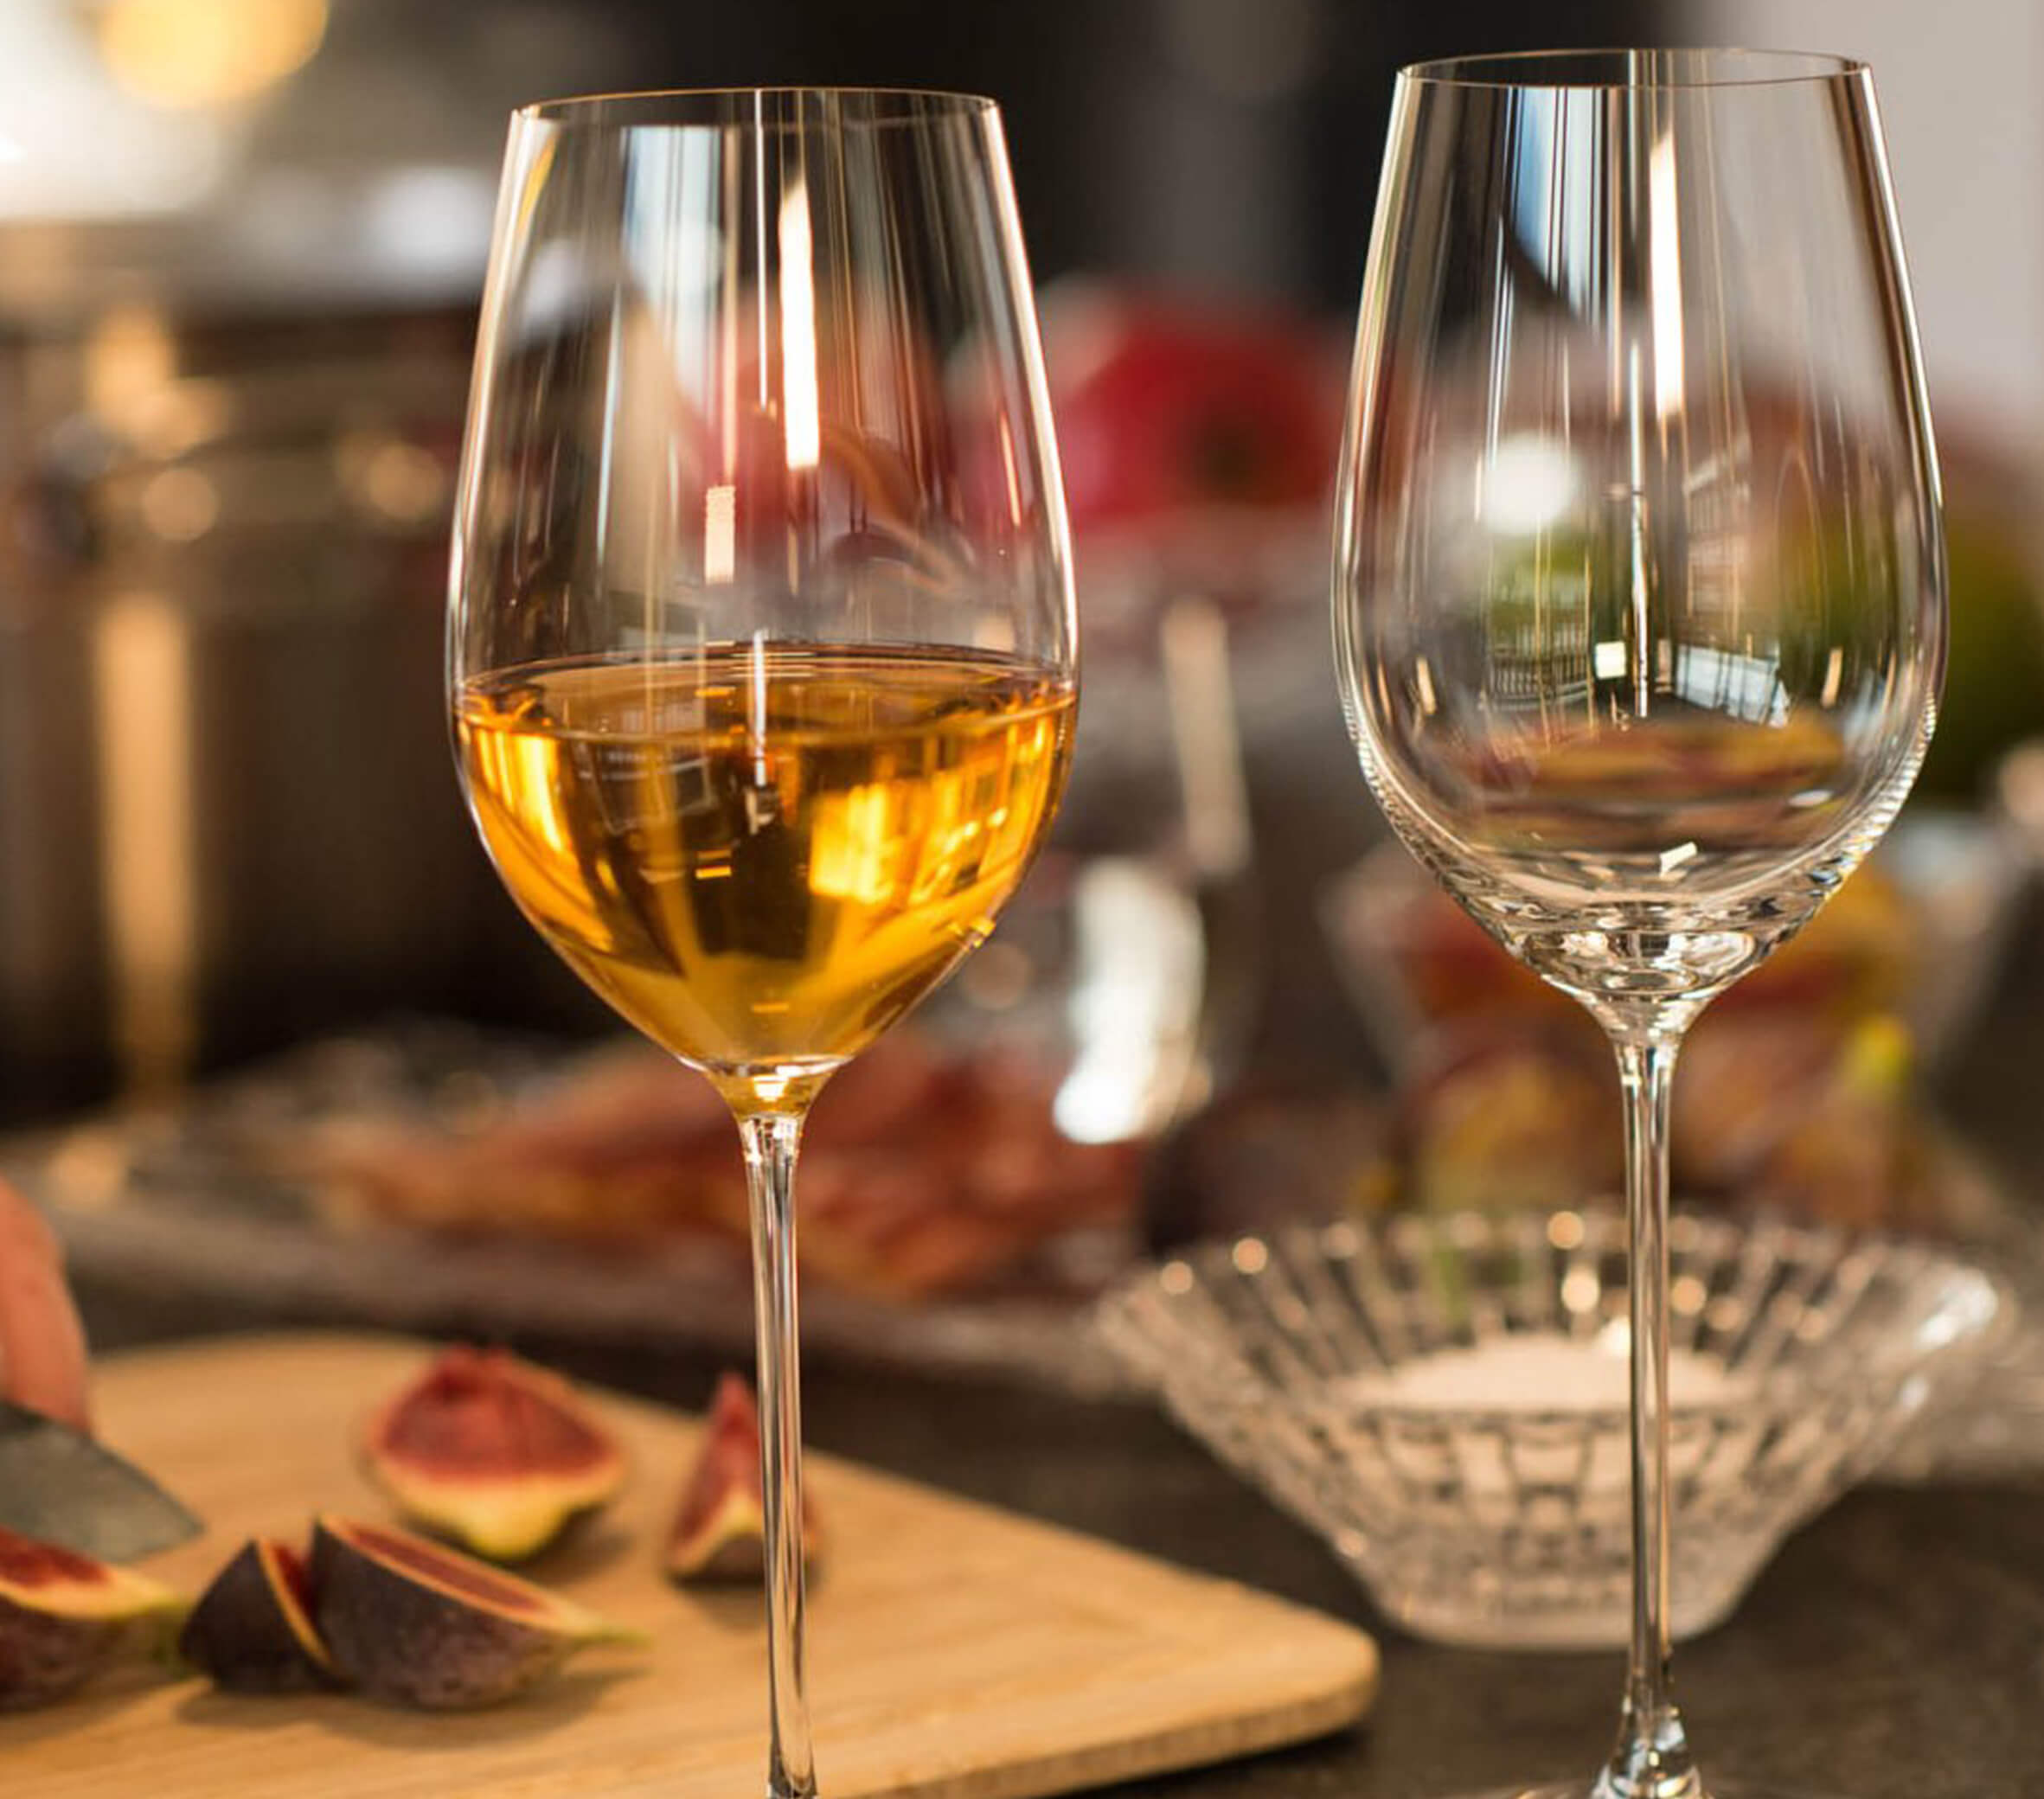 Chardonnay the queen of white wines